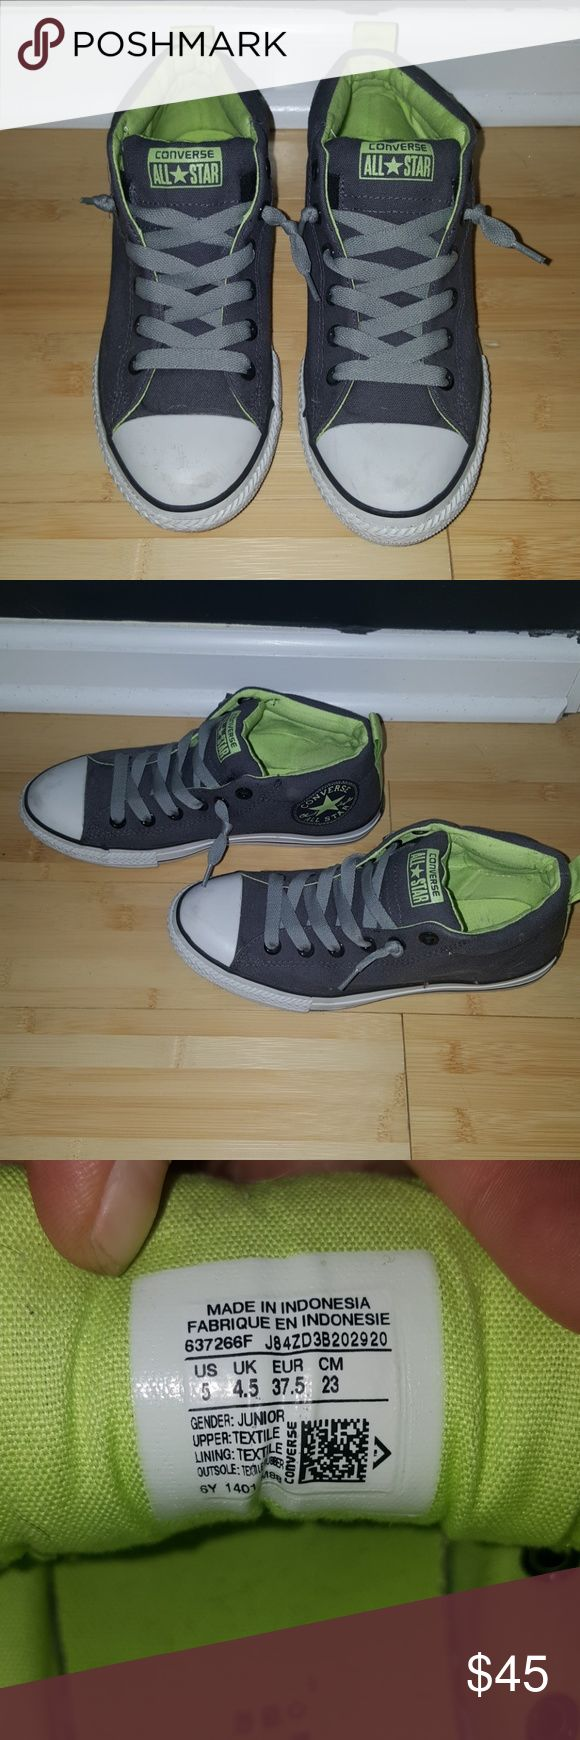 Converse all stars high topa Grey and lime green converse high tops, junior size 5, fits women's size 7.5, great condition only worn a few times Converse Shoes Sneakers